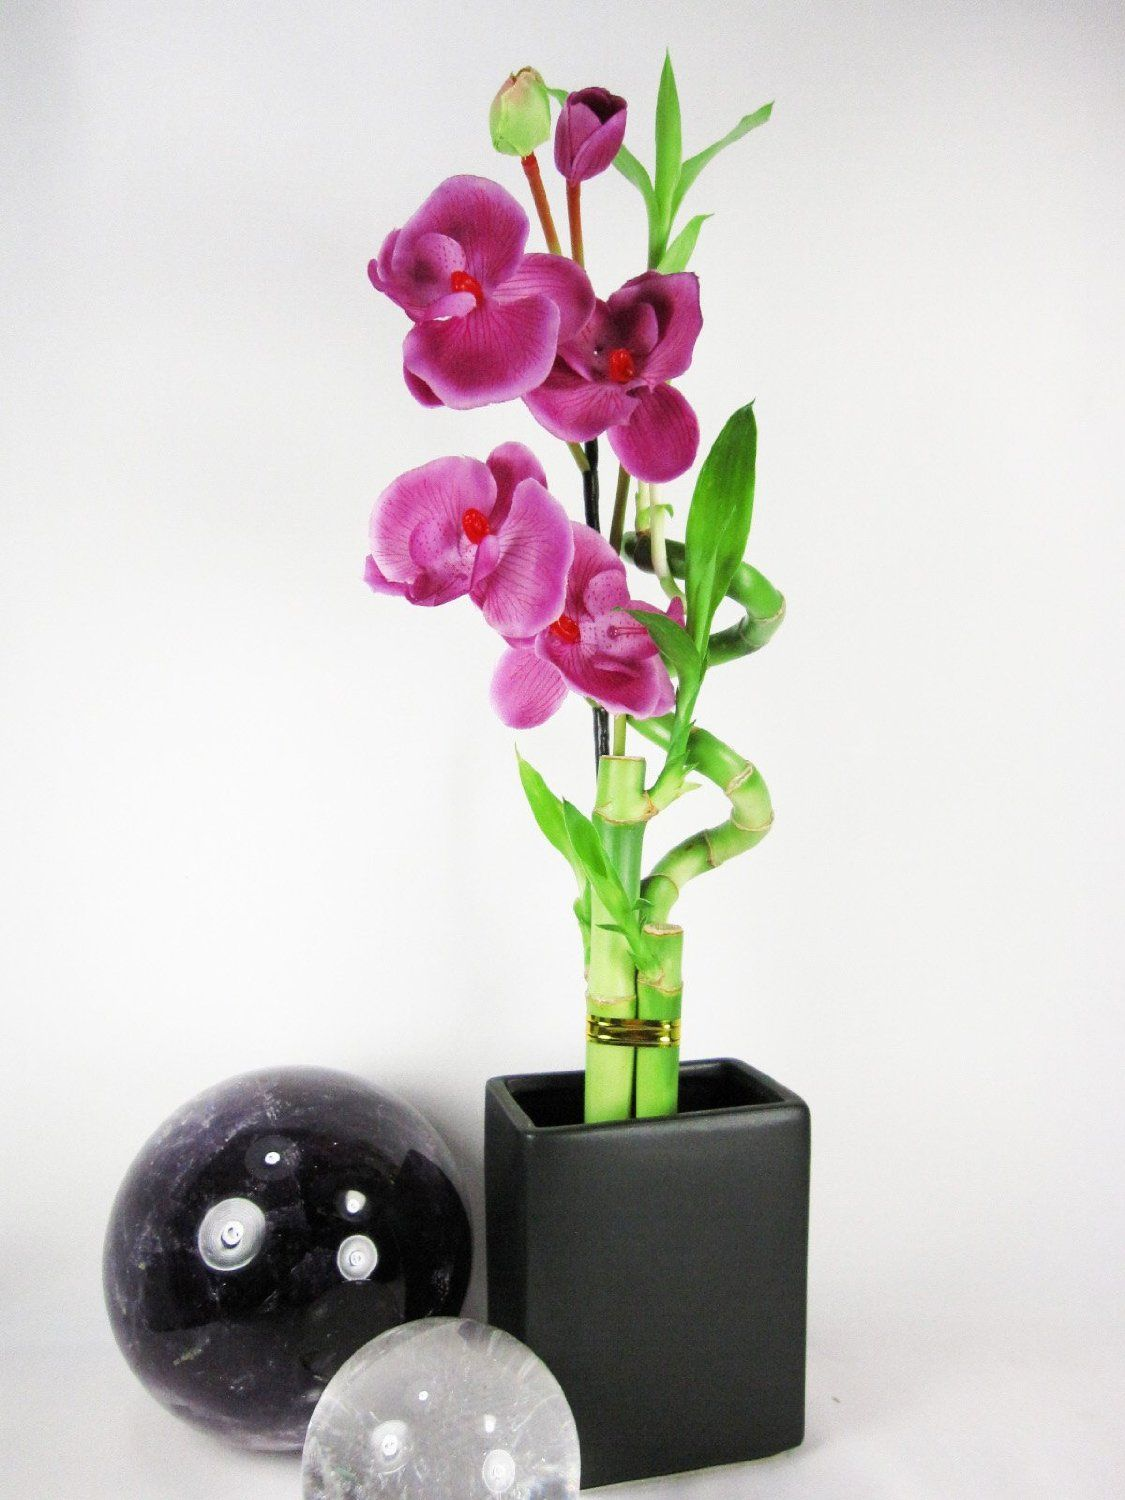 9greenbox live spiral 3 style lucky bamboo plant arrangement w 9greenbox live spiral 3 style lucky bamboo plant arrangement w black ceramic vase reviewsmspy